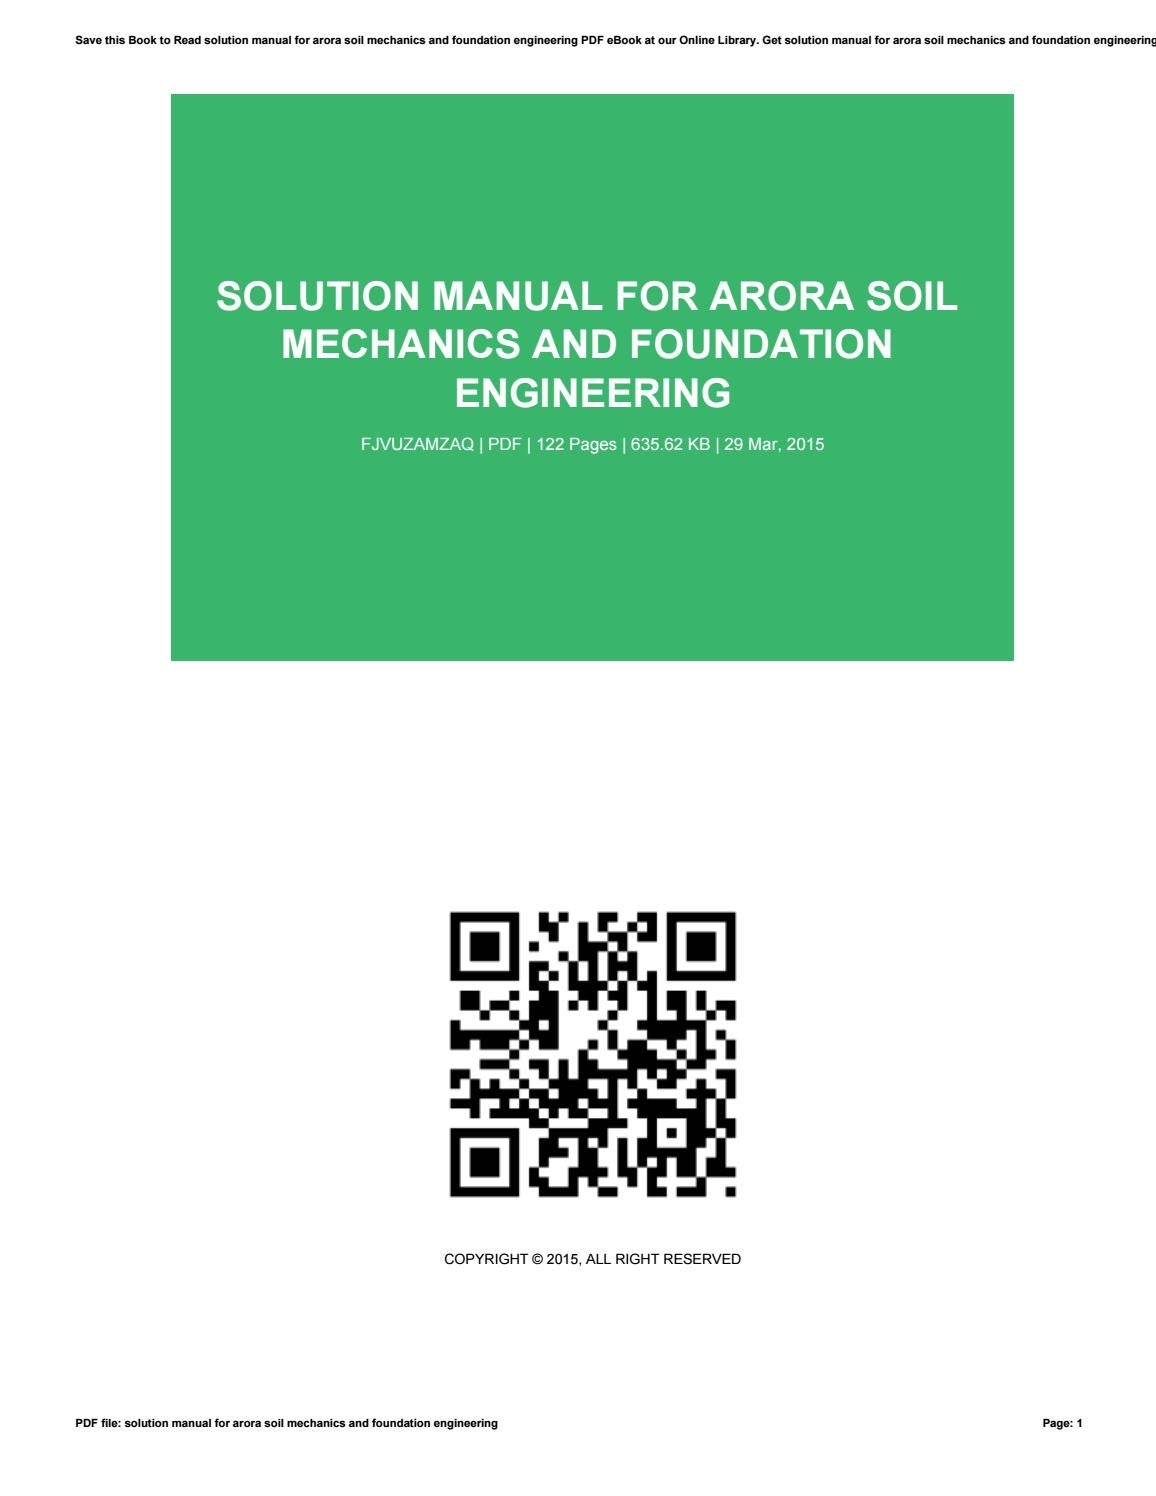 Solution manual for arora soil mechanics and foundation engineering